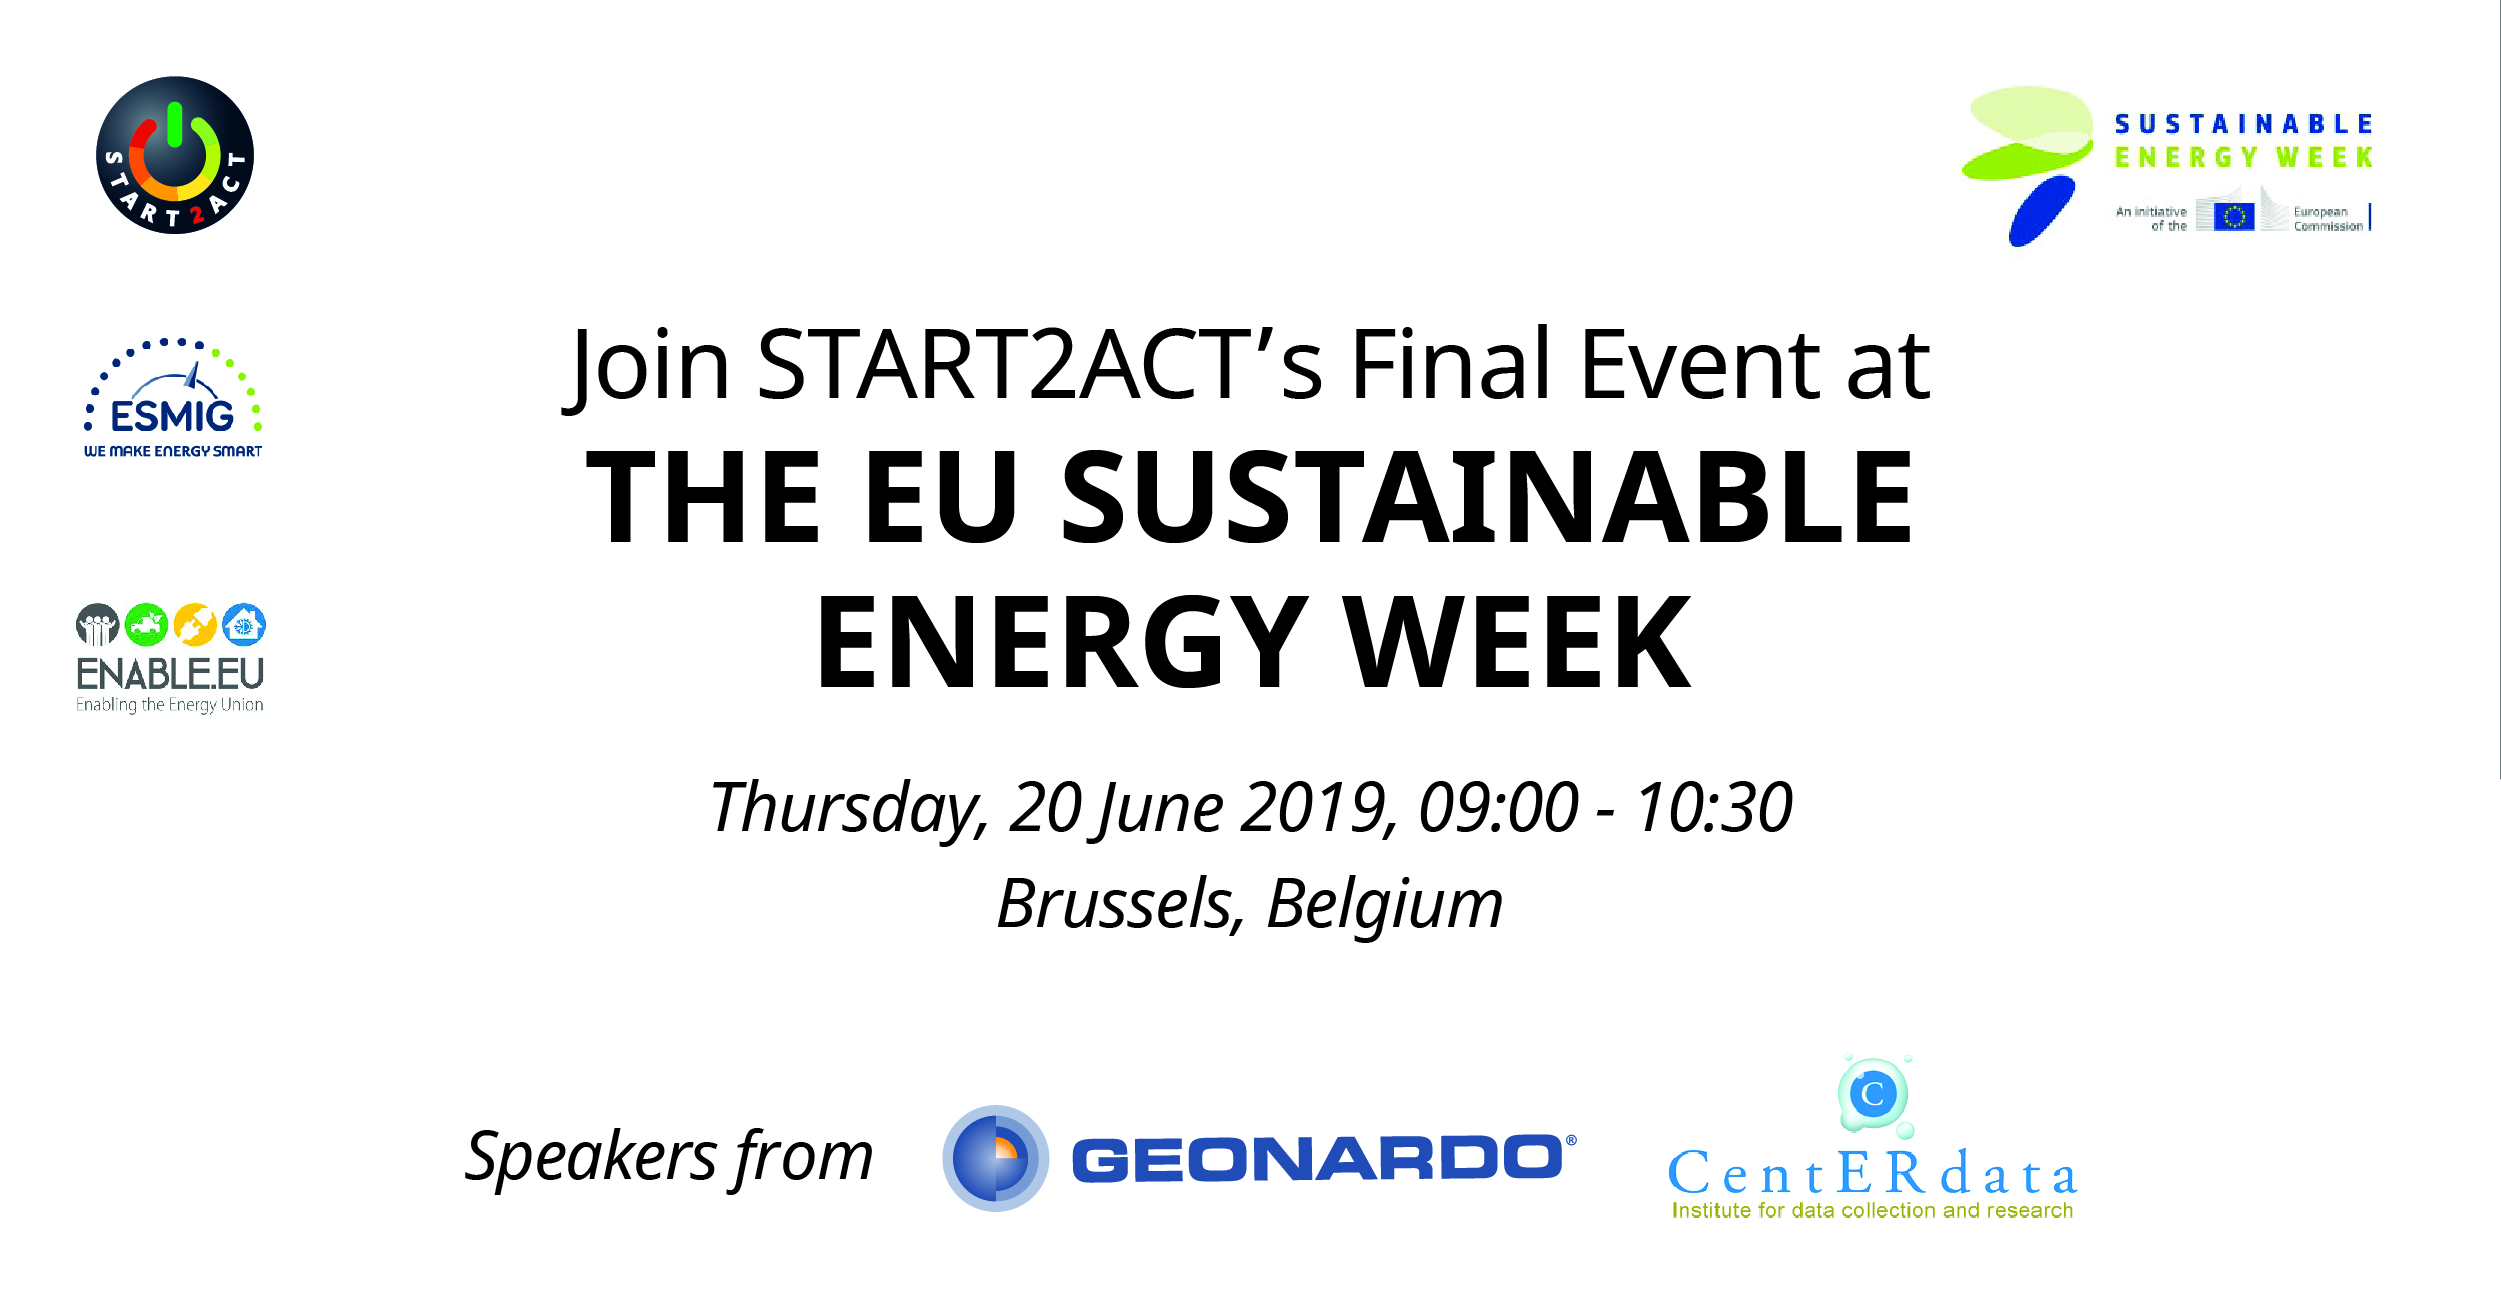 Join START2ACT's Final Event at the EU Sustainable Energy Week